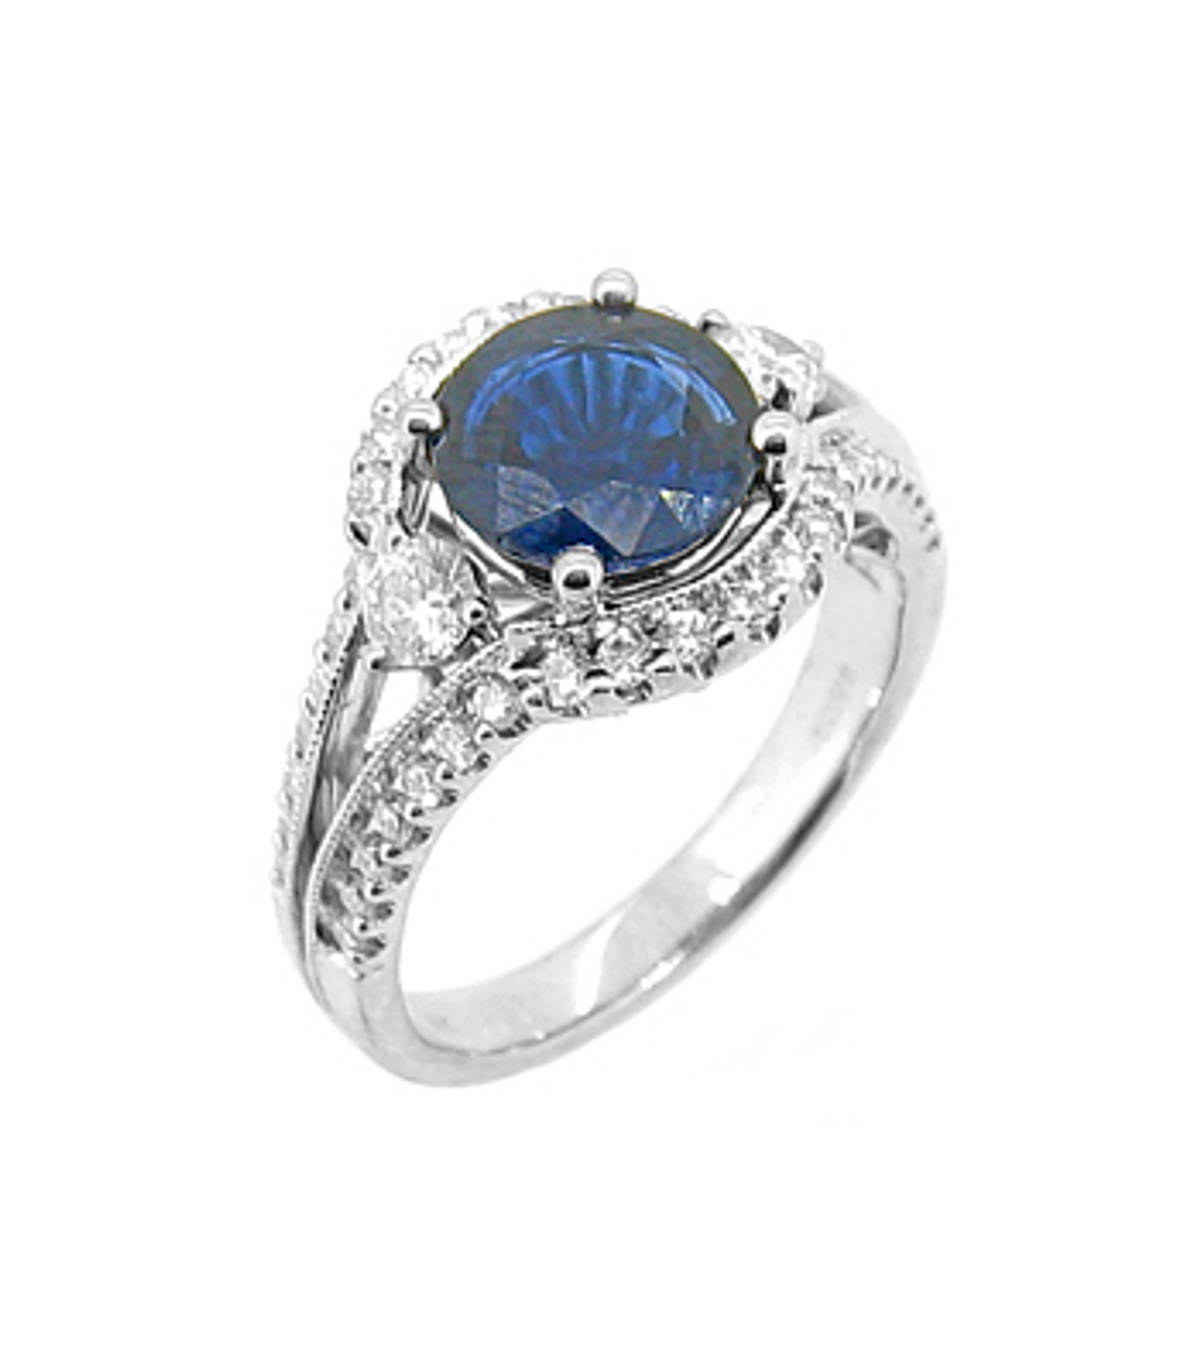 Sapphire and diamond cluster ringPictured item: sapphire: total 2.00ct/diamonds: total 0.70ct set in 18k white gold